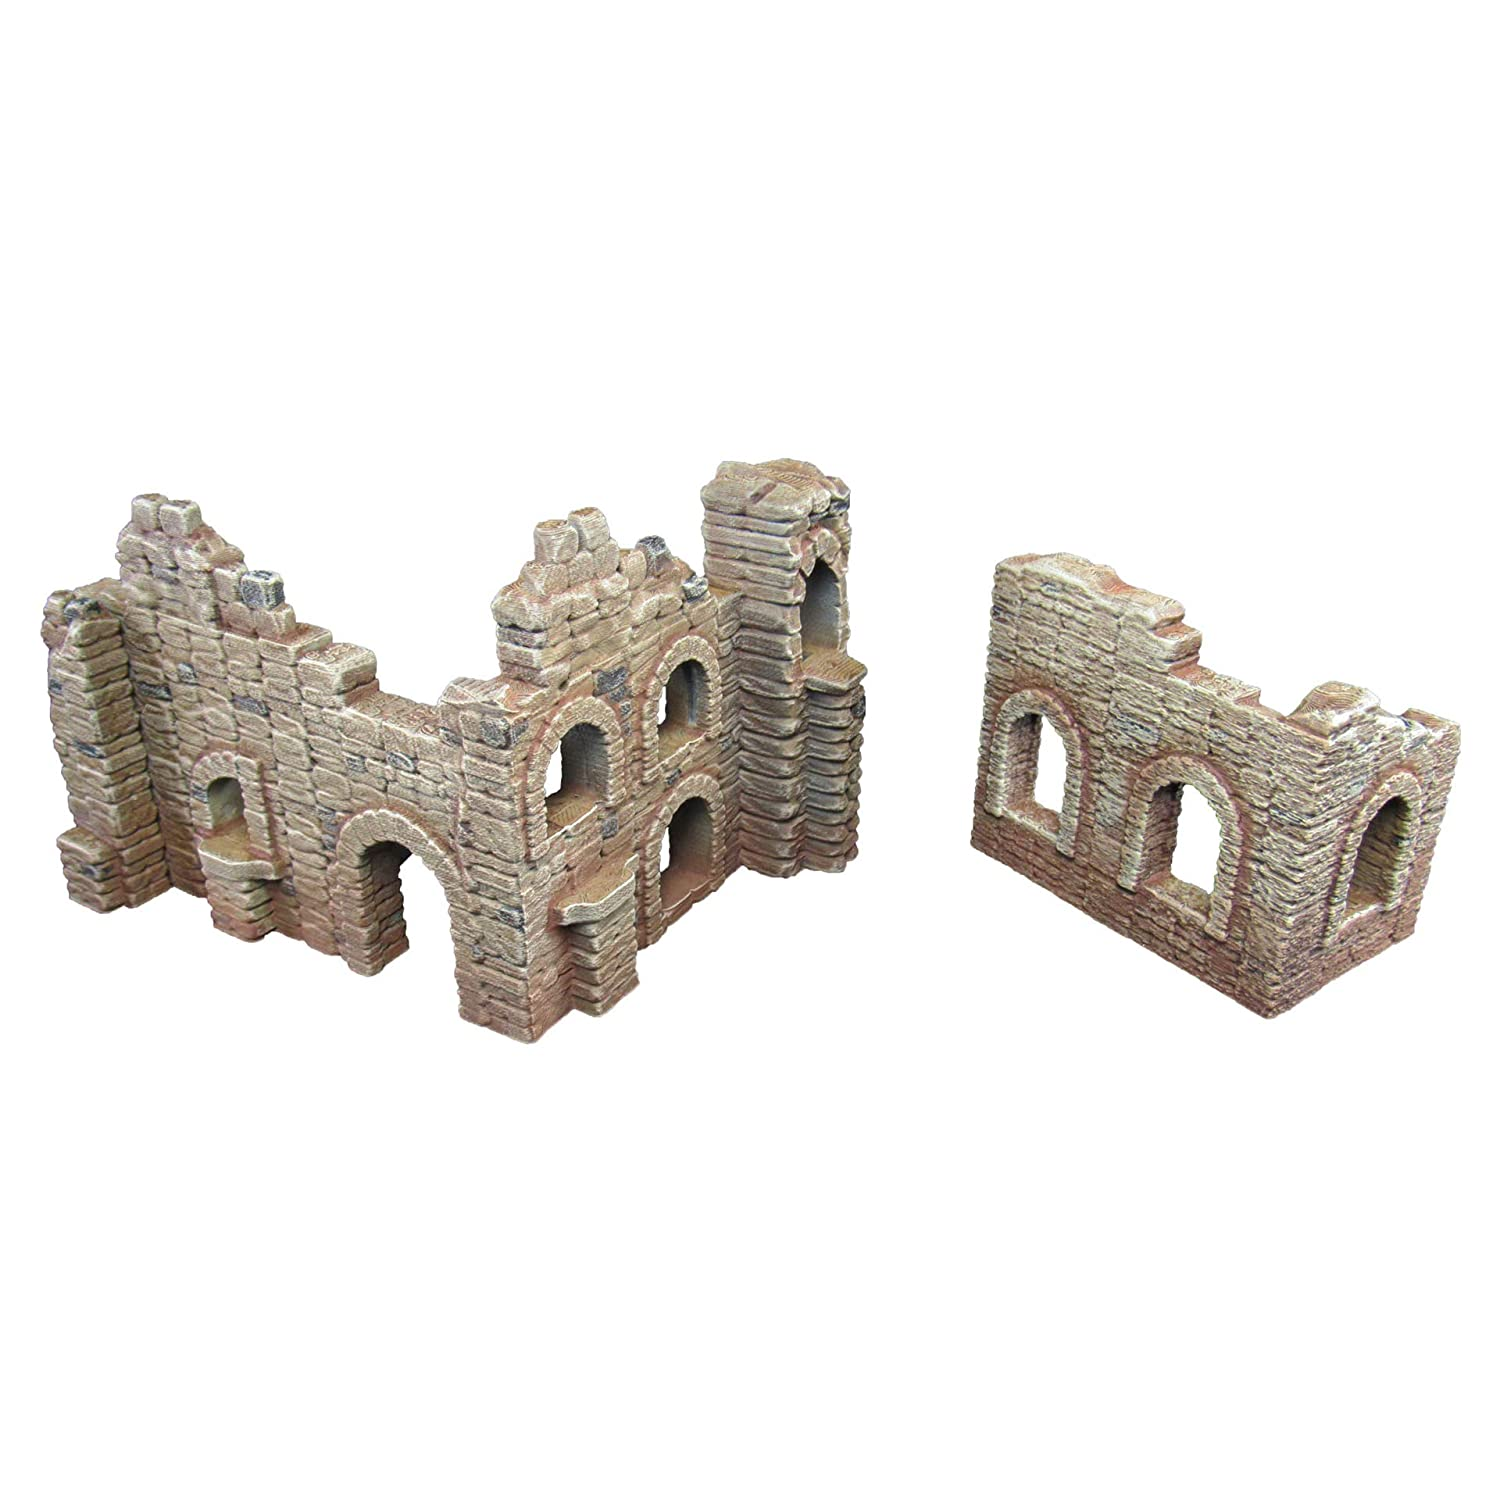 EnderToys Battle Ruined Walls, Terrain Scenery for Tabletop 28mm Miniatures Wargame, 3D Printed and Paintable